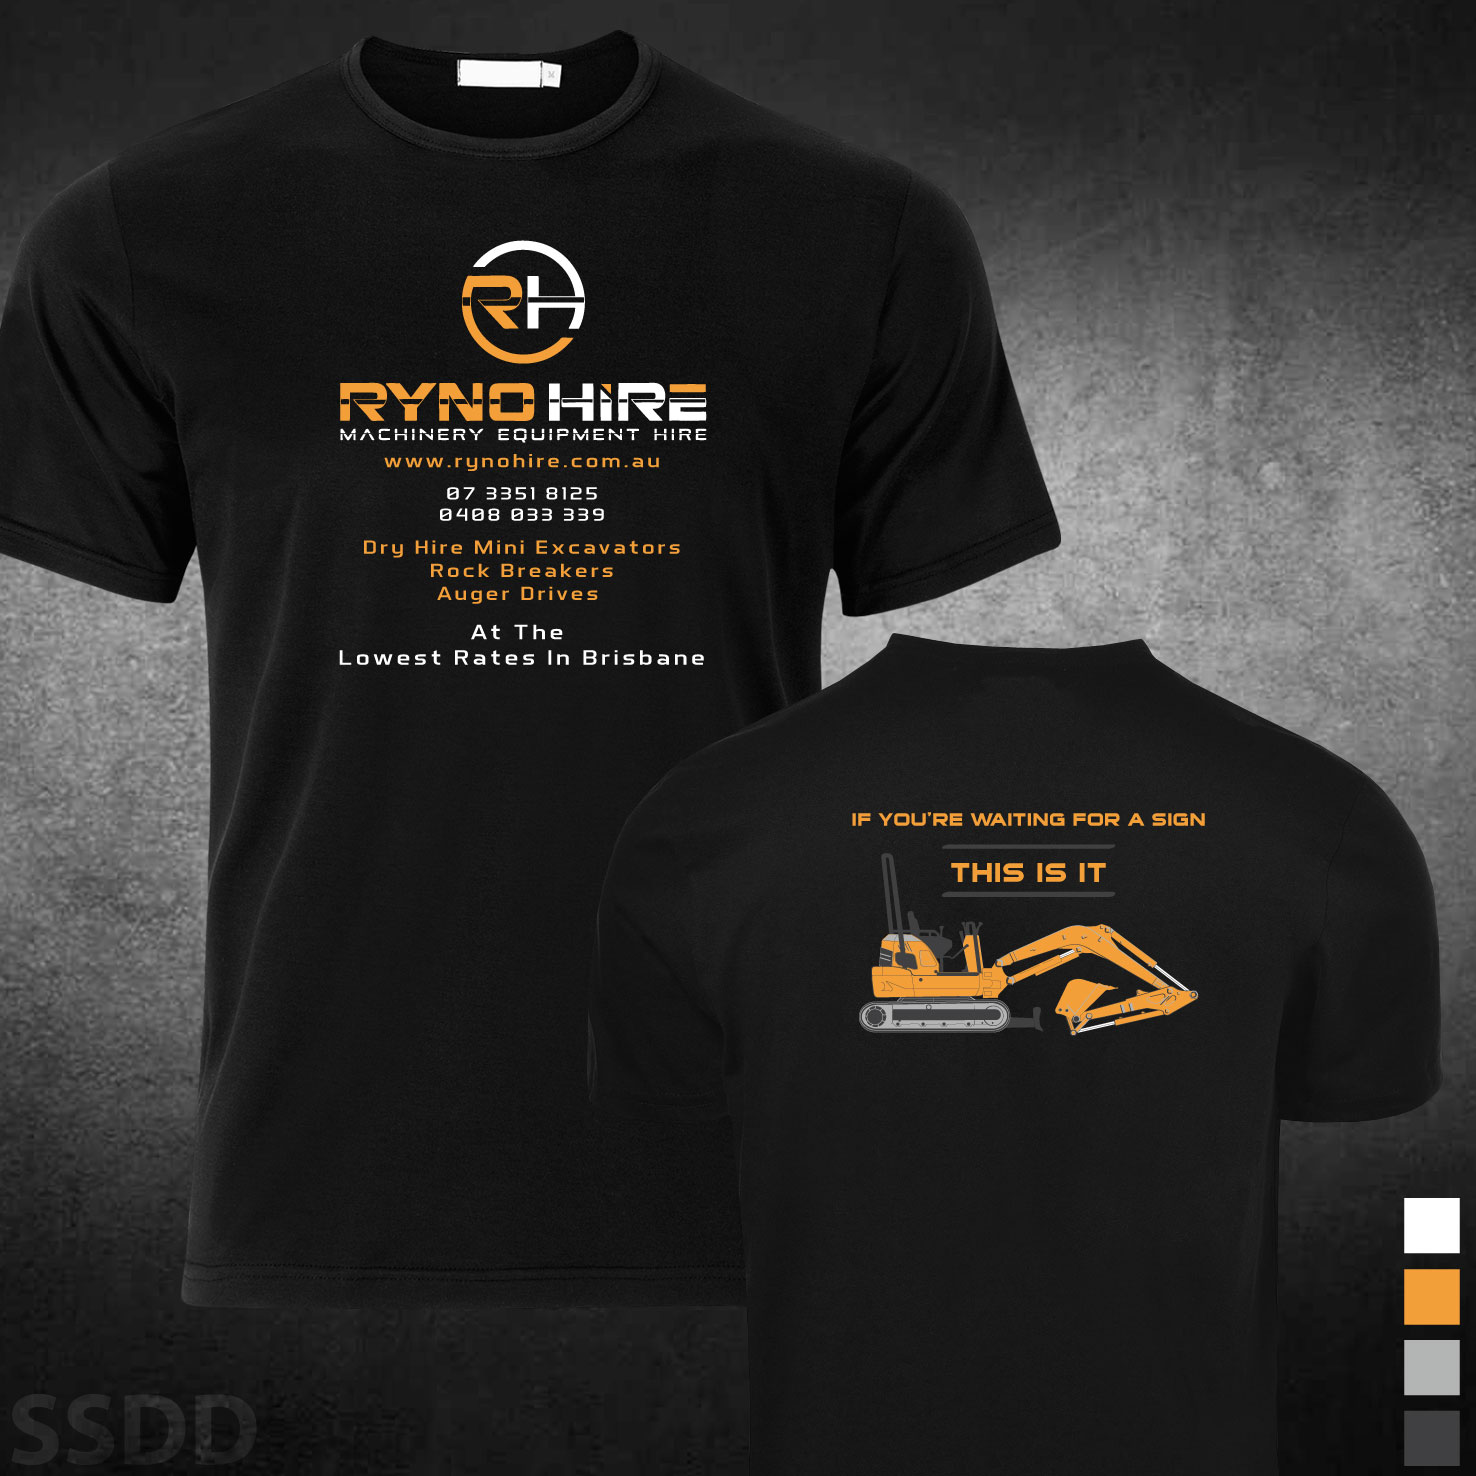 Shirt design rates - T Shirt Design By Ssdd For Need A Funny Eye Catching Shirt Design For